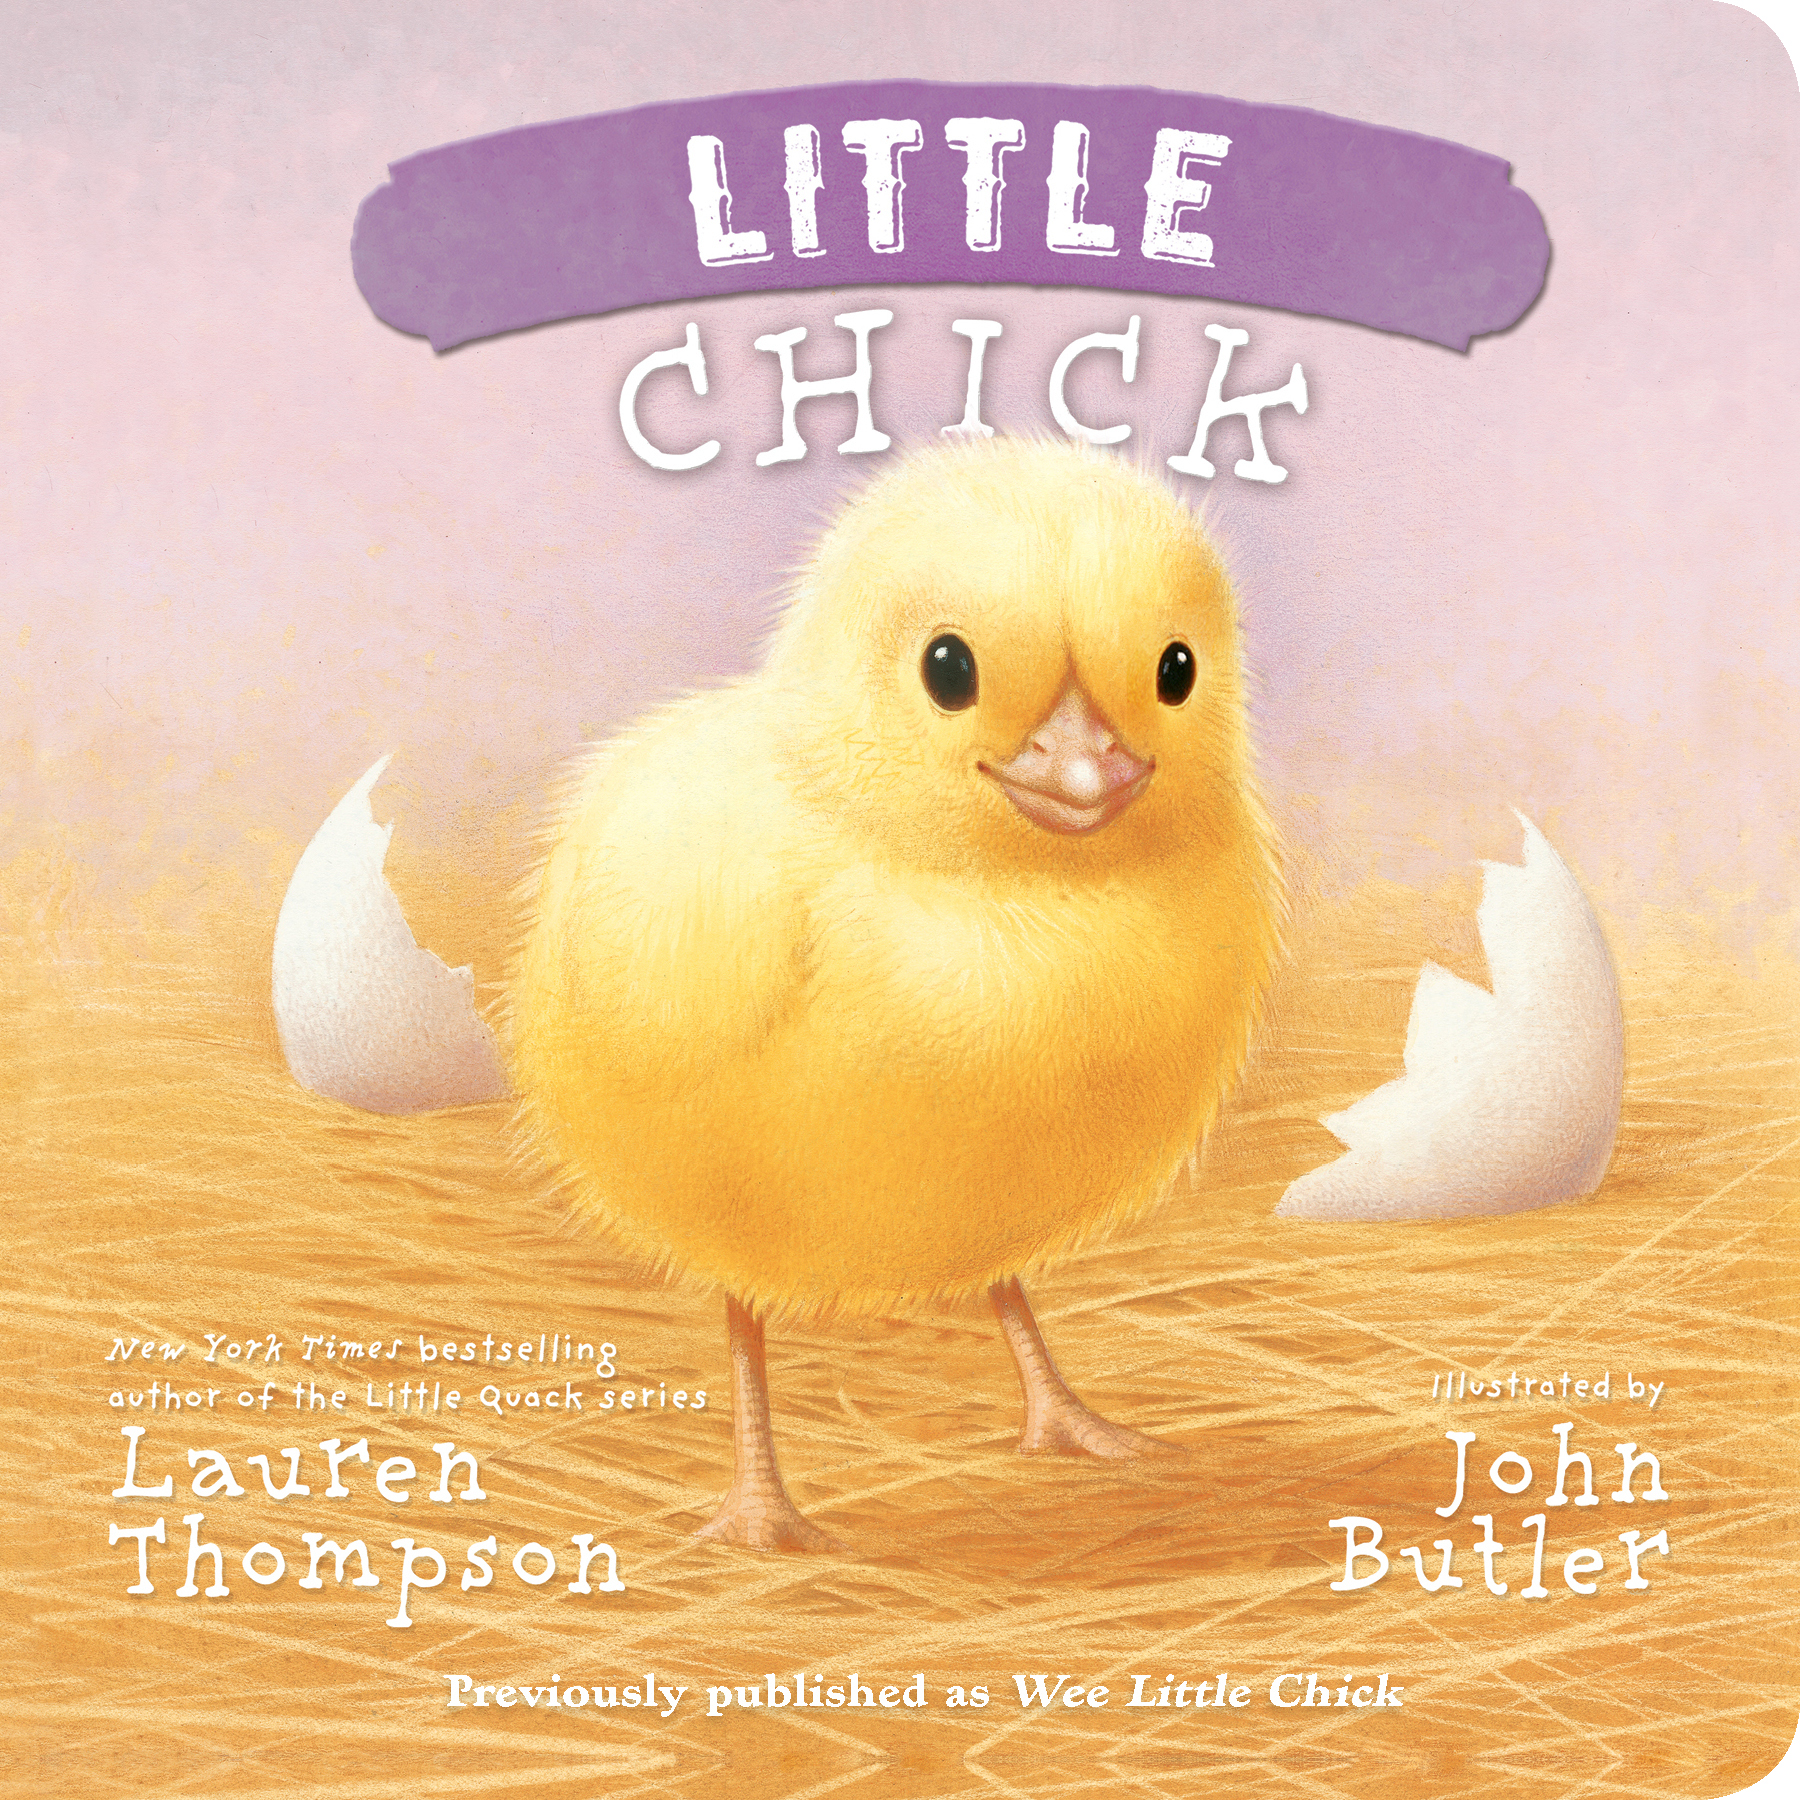 Little-chick-9781442493117_hr